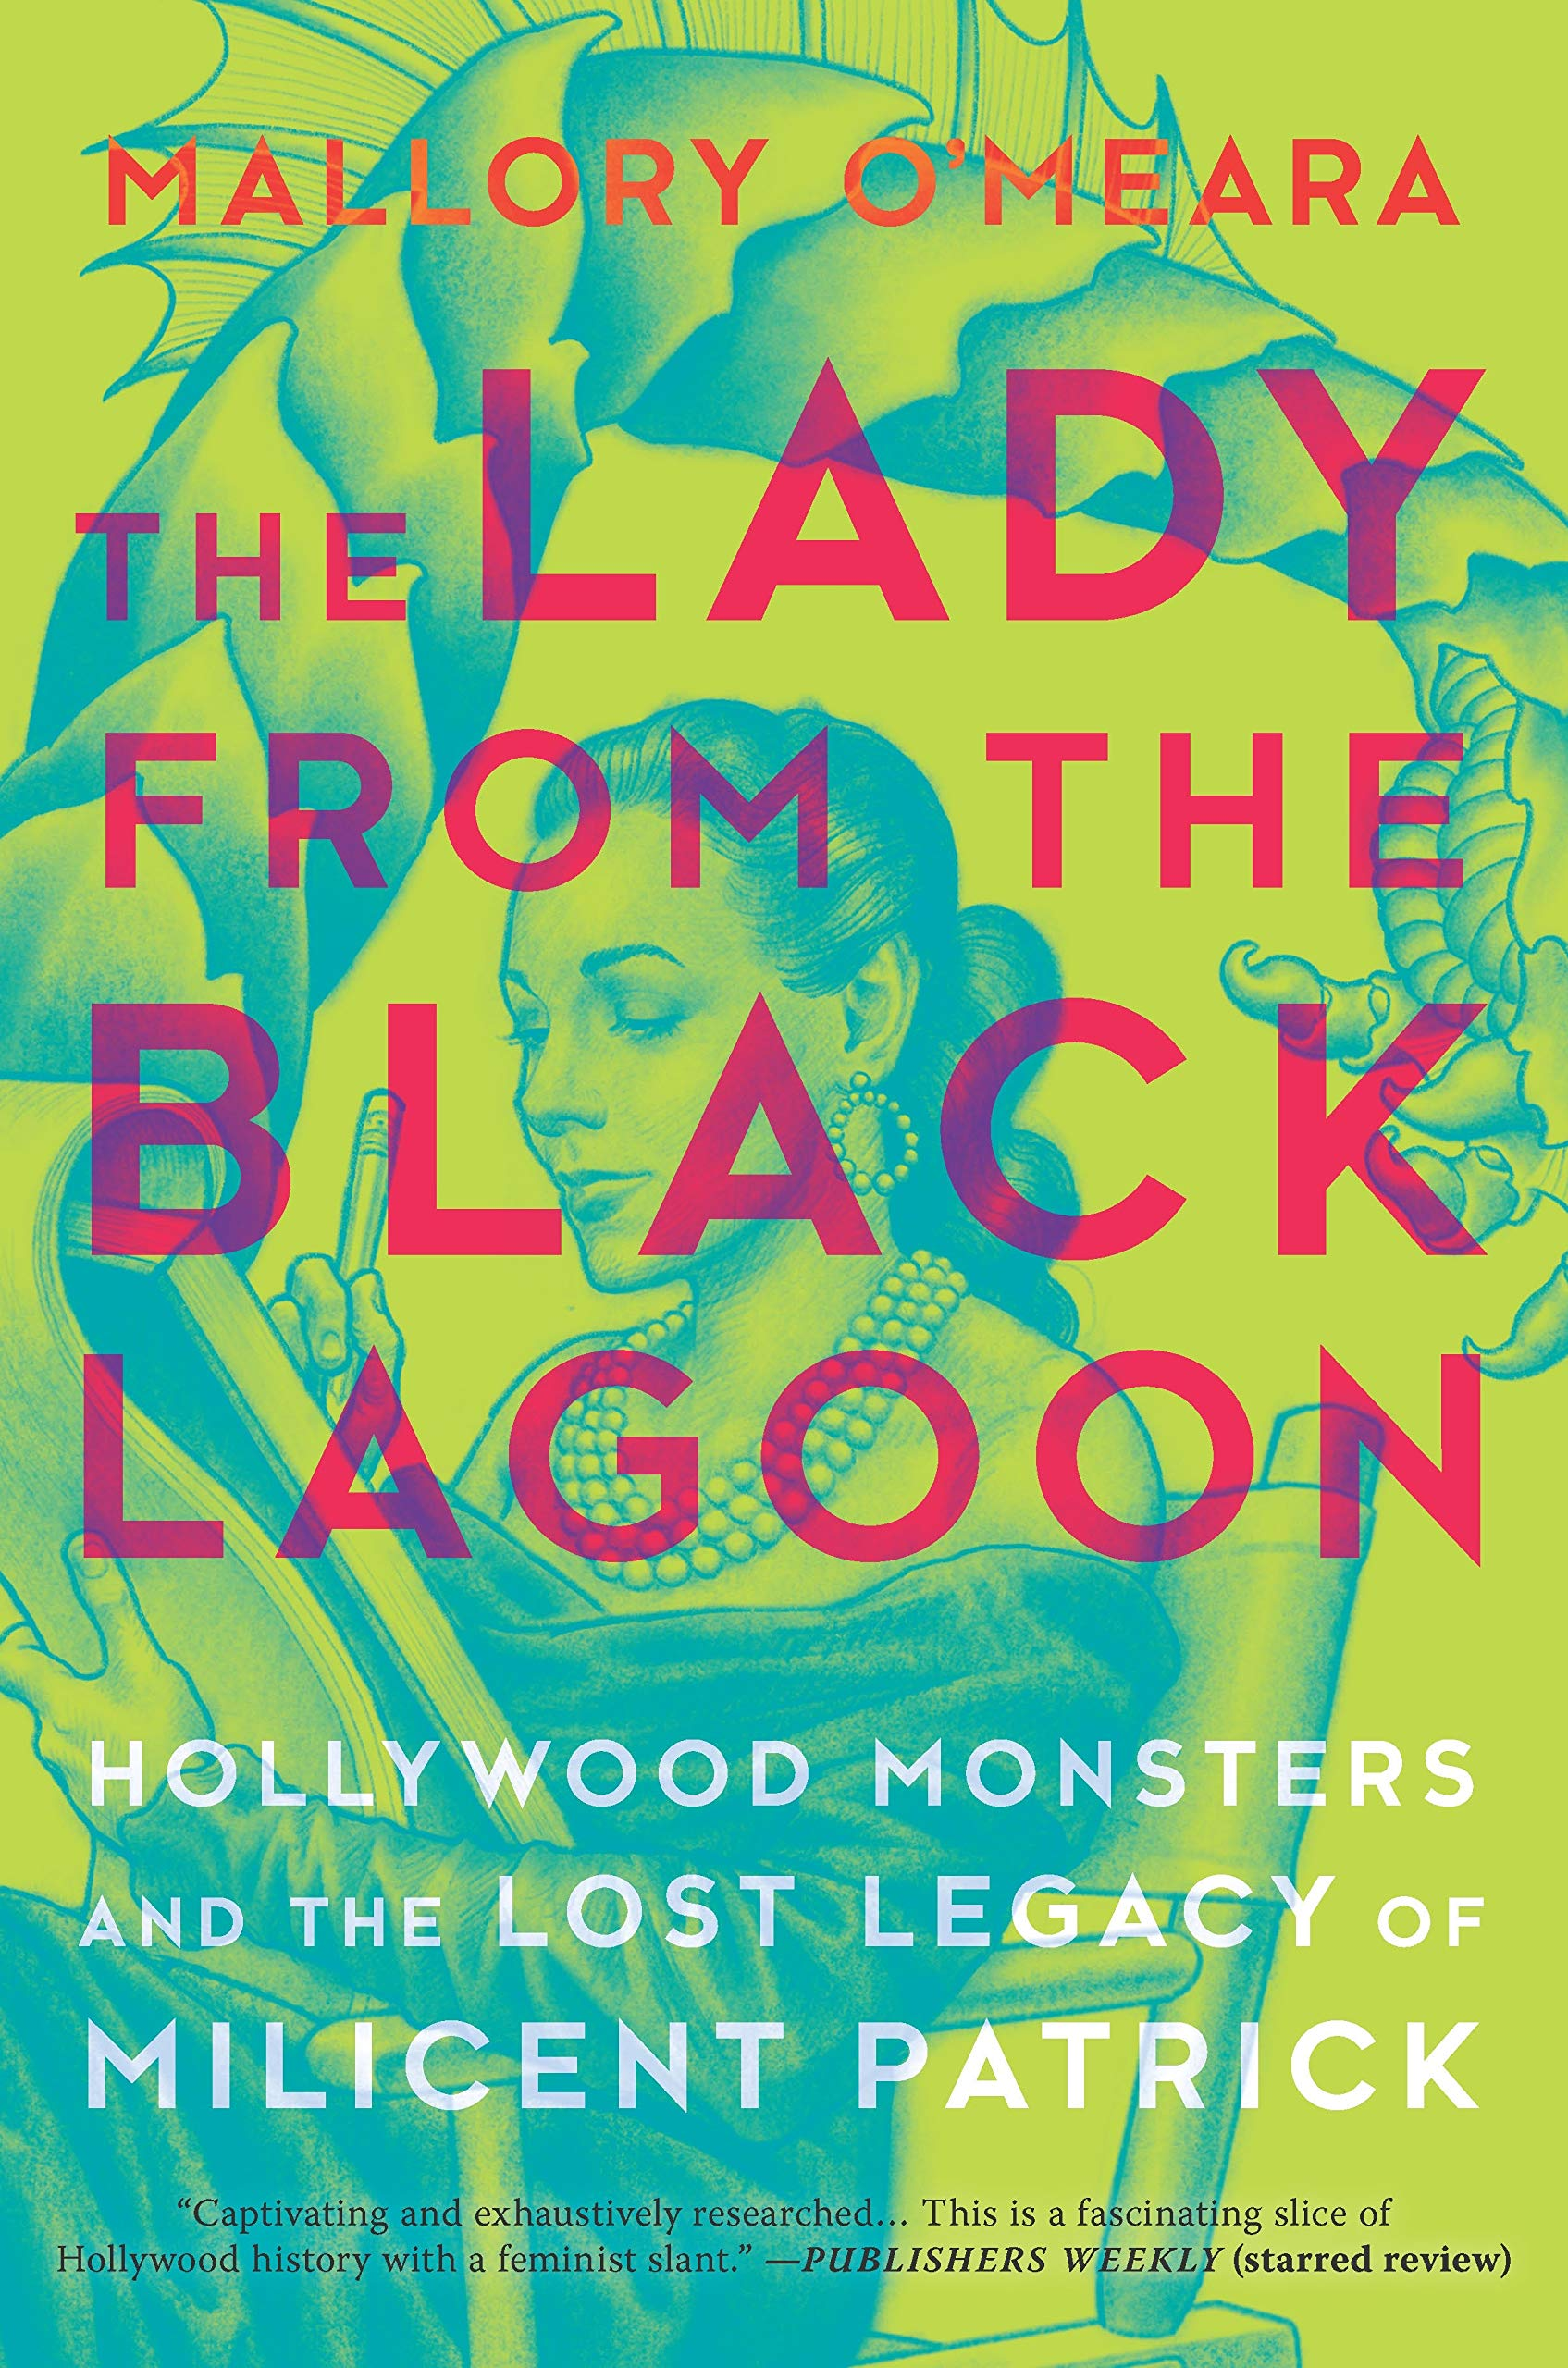 Image result for the lady from the black lagoon hollywood monsters and the lost legacy of milicent patrick